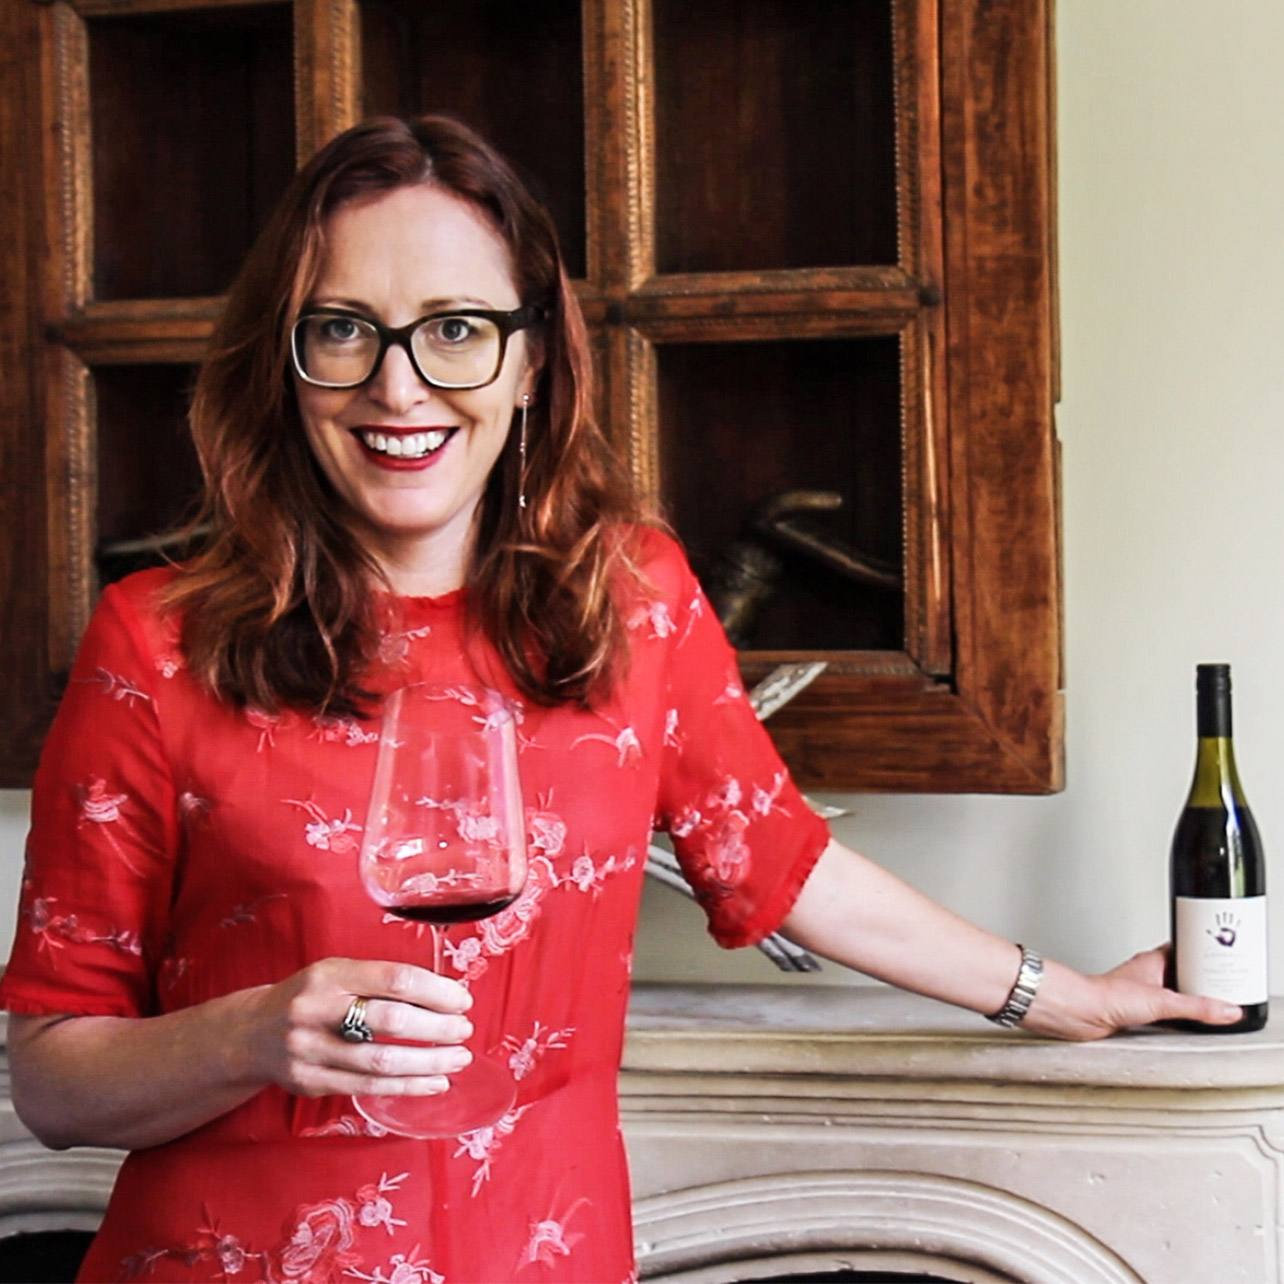 Tamra Kelly-Washington photographed with a glass of Seresin wine and bottle